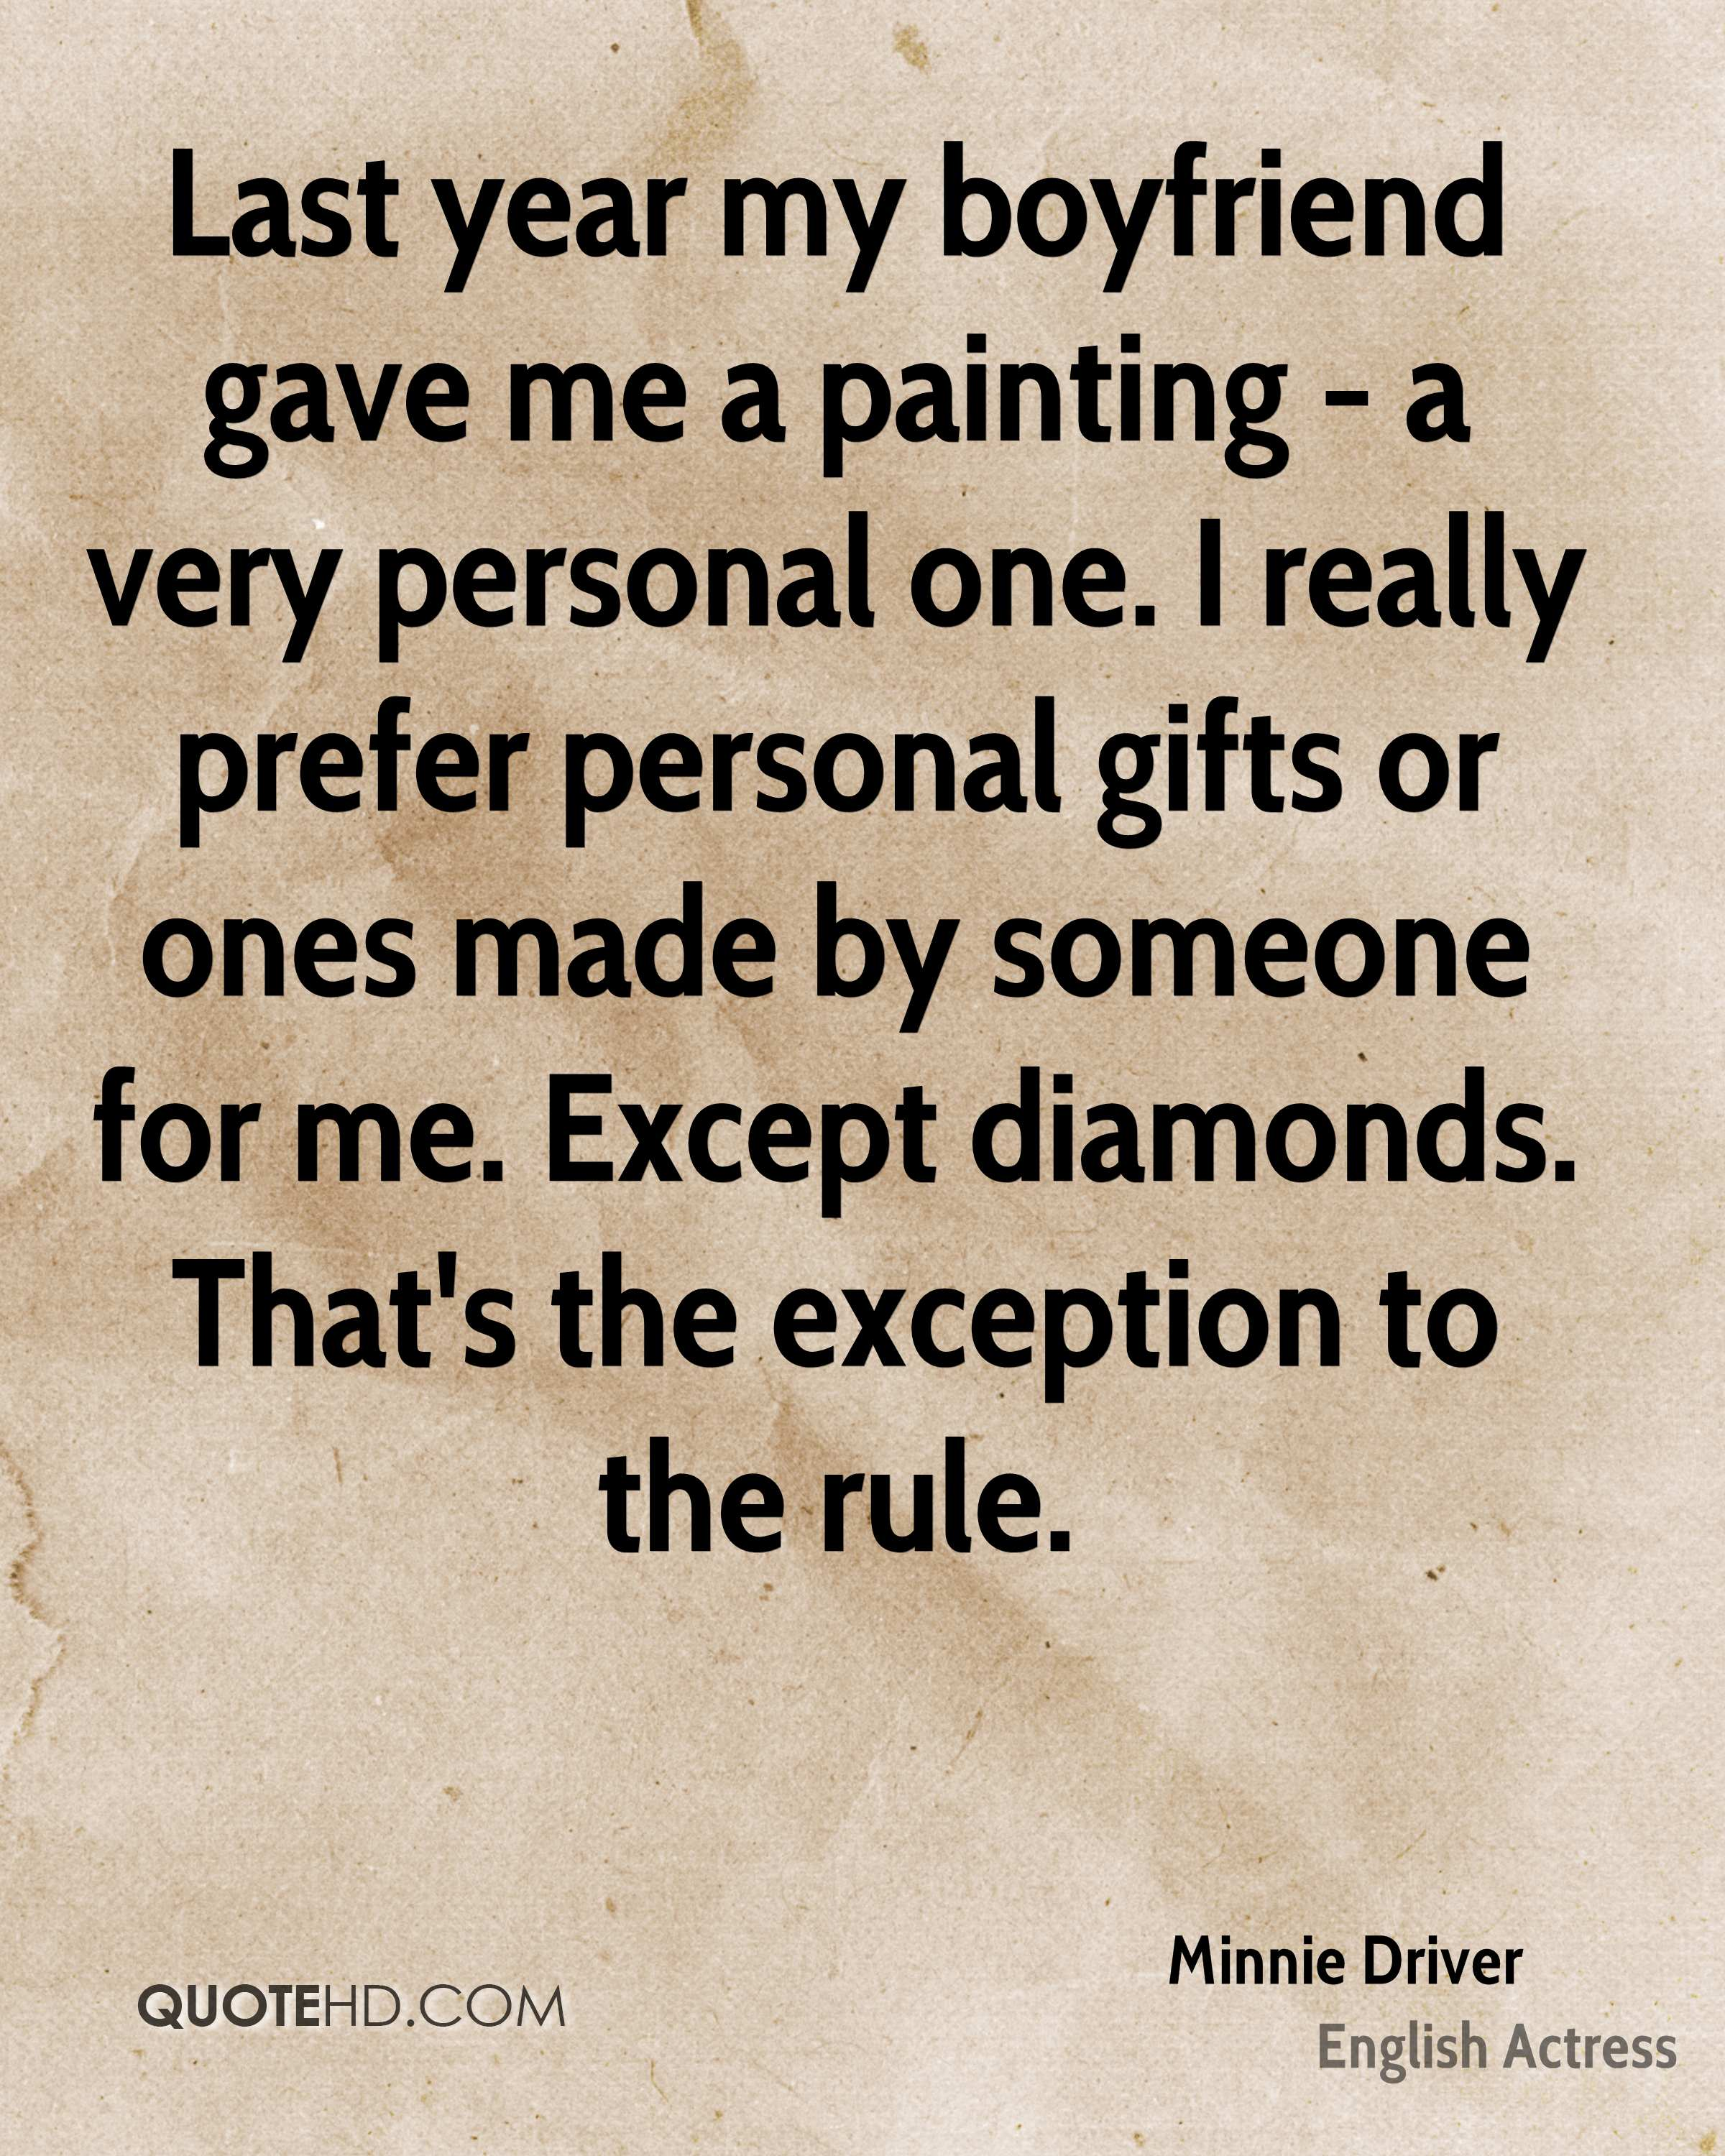 Last year my boyfriend gave me a painting - a very personal one. I really prefer personal gifts or ones made by someone for me. Except diamonds. That's the exception to the rule.